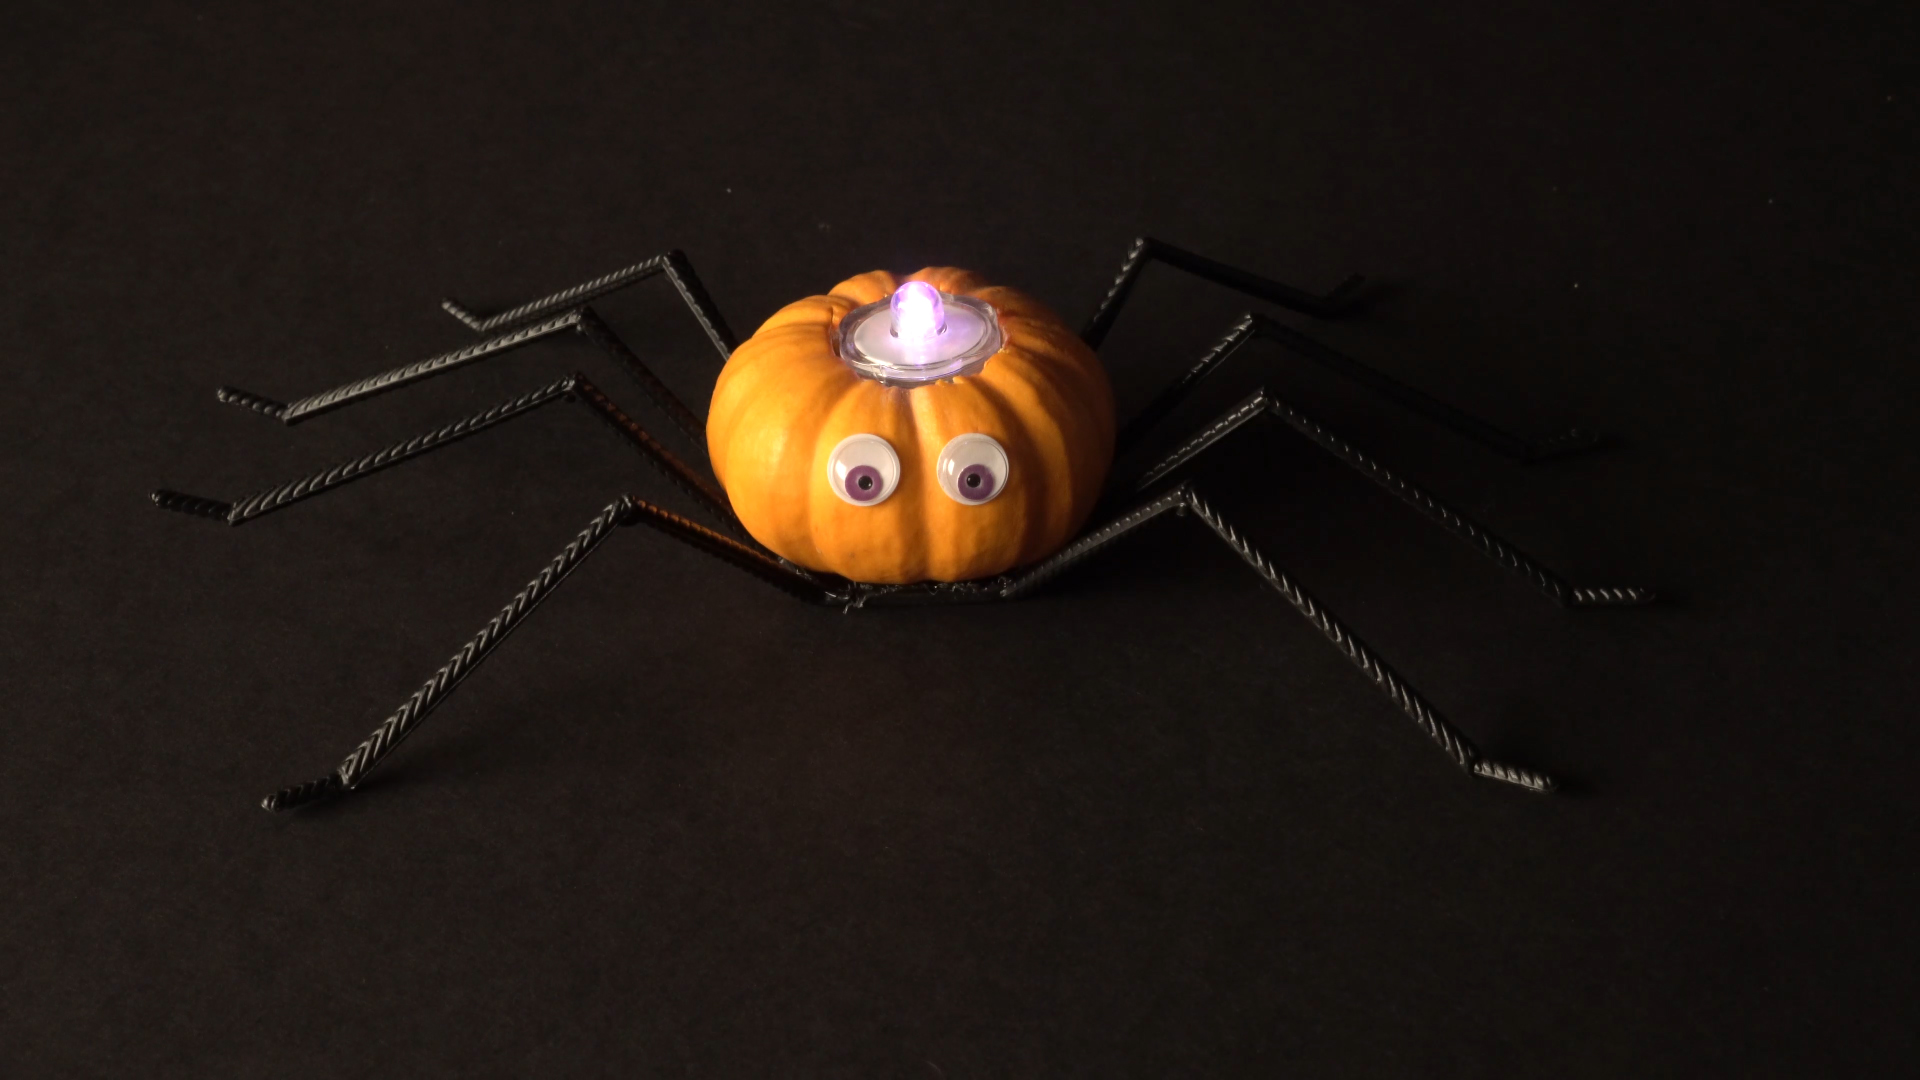 Halloween crafts with color-changing led tea lights - spider